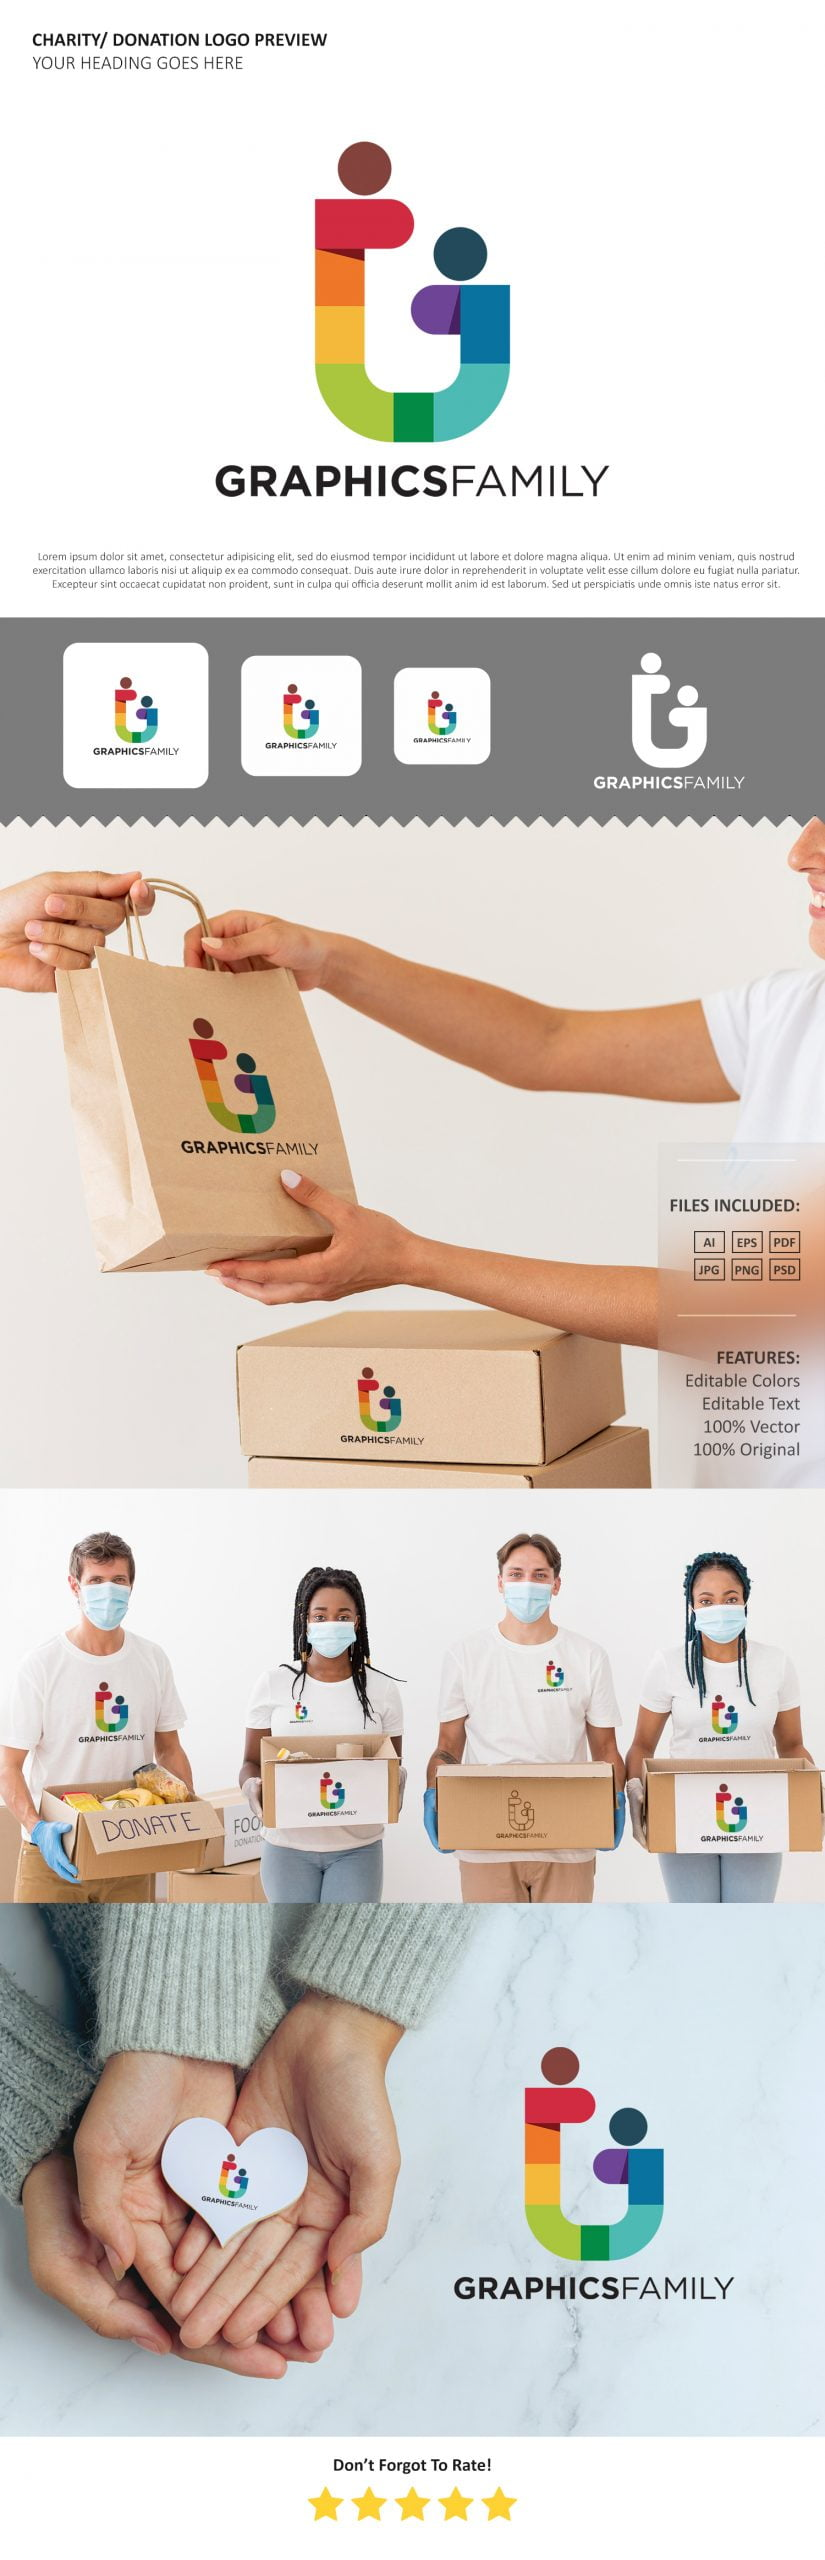 Charity Logo Preview Generator Download